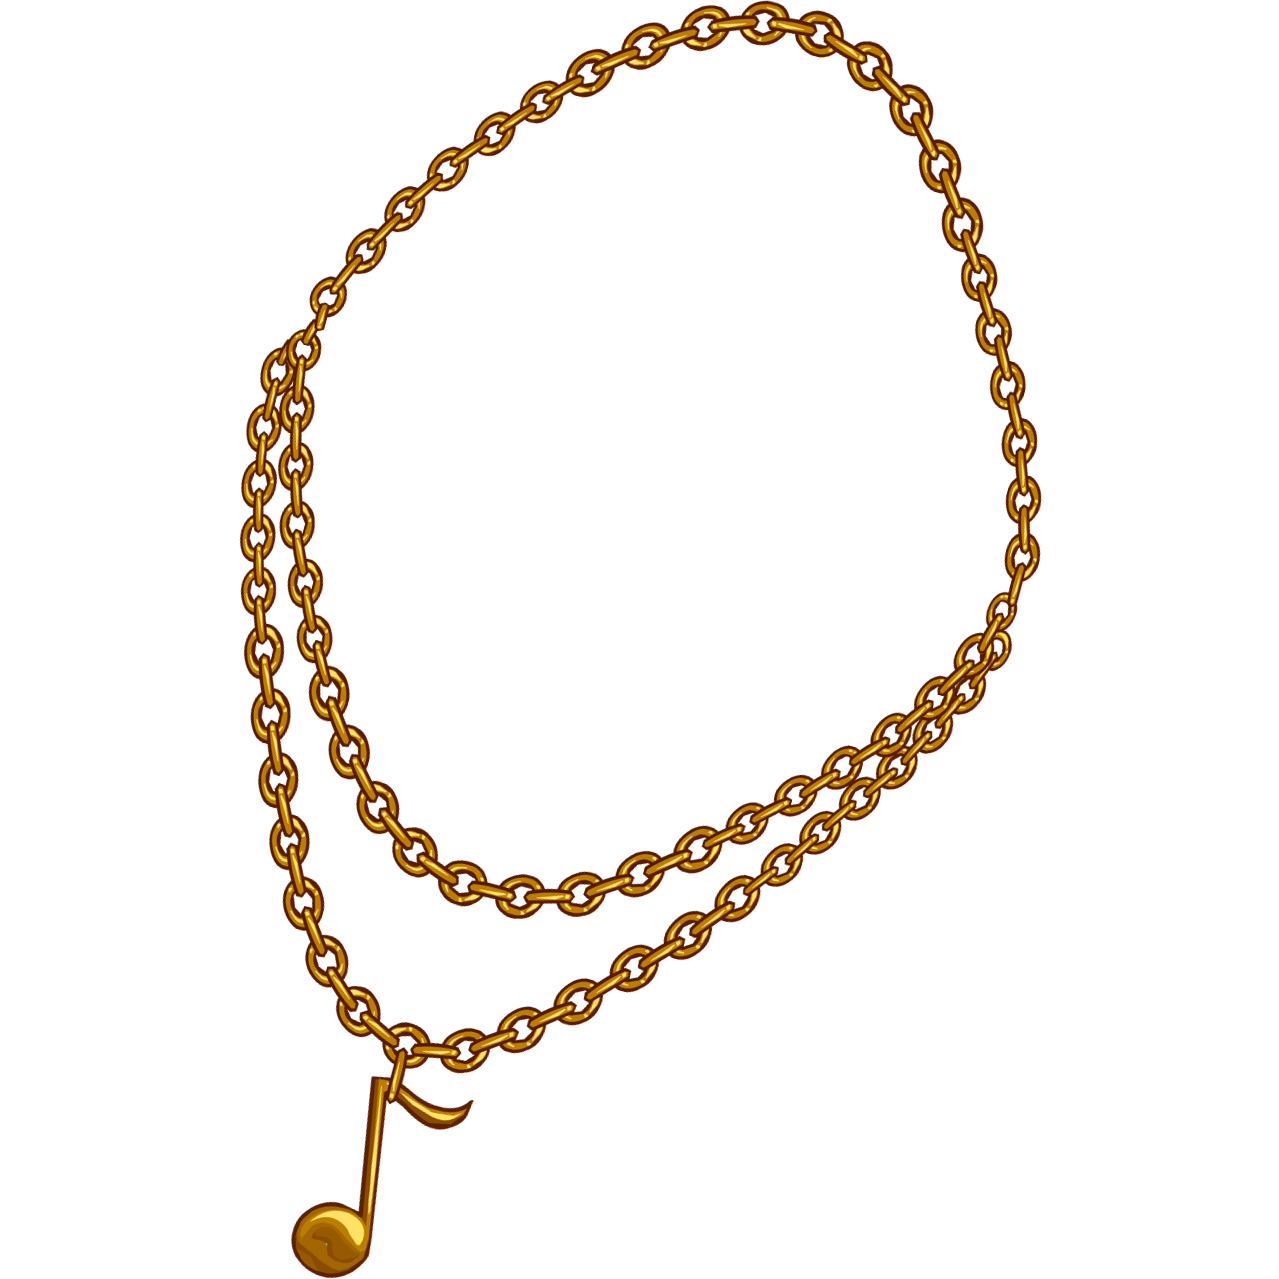 Cartoon chain necklace png. Transparent pictures free icons